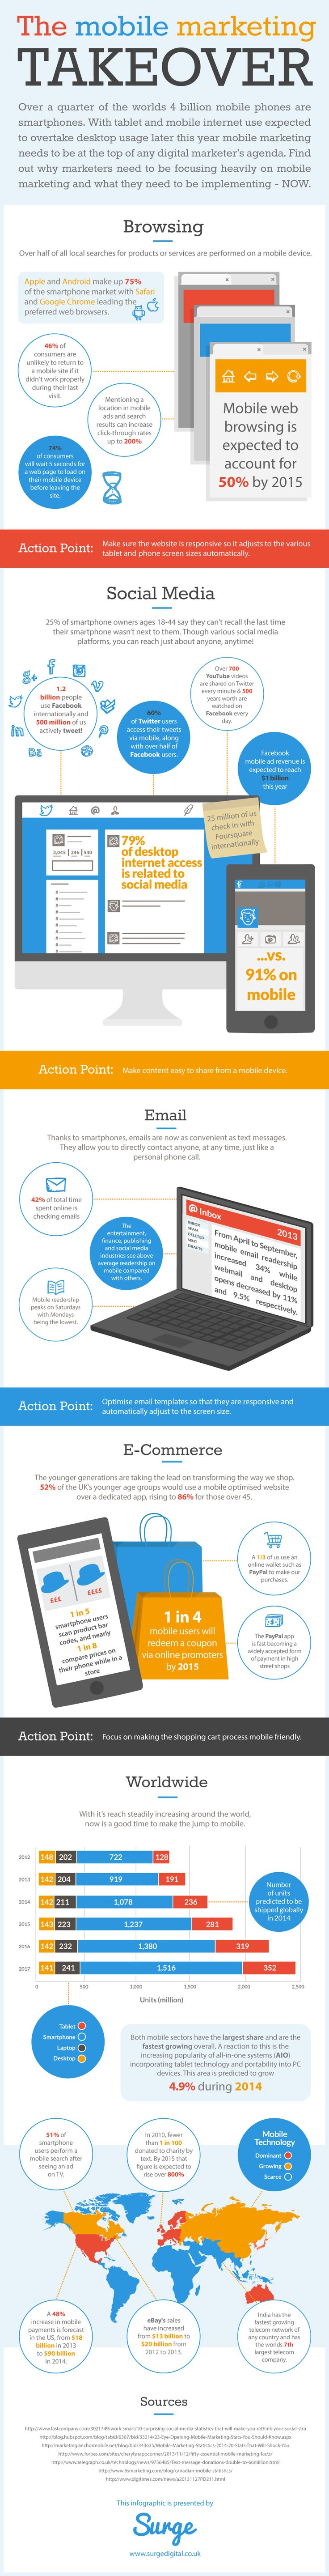 The Mobile Marketing Takeover [Infographic] With over 1 billion smartphones, which together with tablets should surpass desktop usage soon, your focus should be on mobile marketing. #NerdMentor